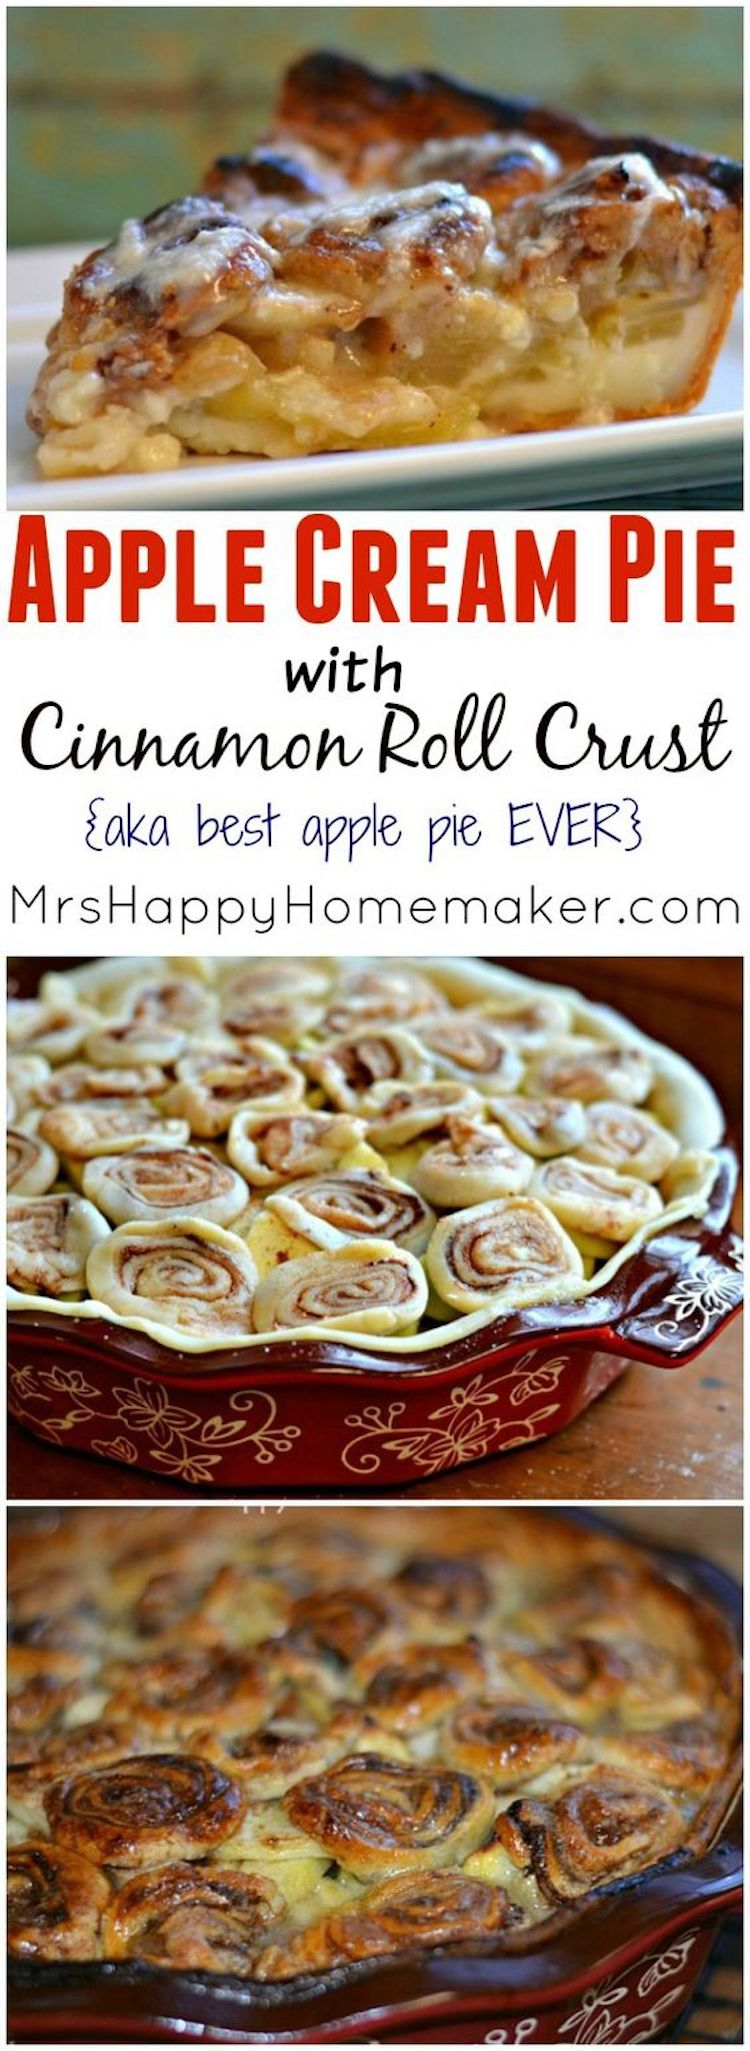 Apple Cream Cinnamon Crust Pie Recipe: Apple Cream Pie with Cinnamon Roll Crust – aka the BEST apple pie you've EVER had! Apples & cream baked into a cinnamon roll pie crust – A MUST MAKE!